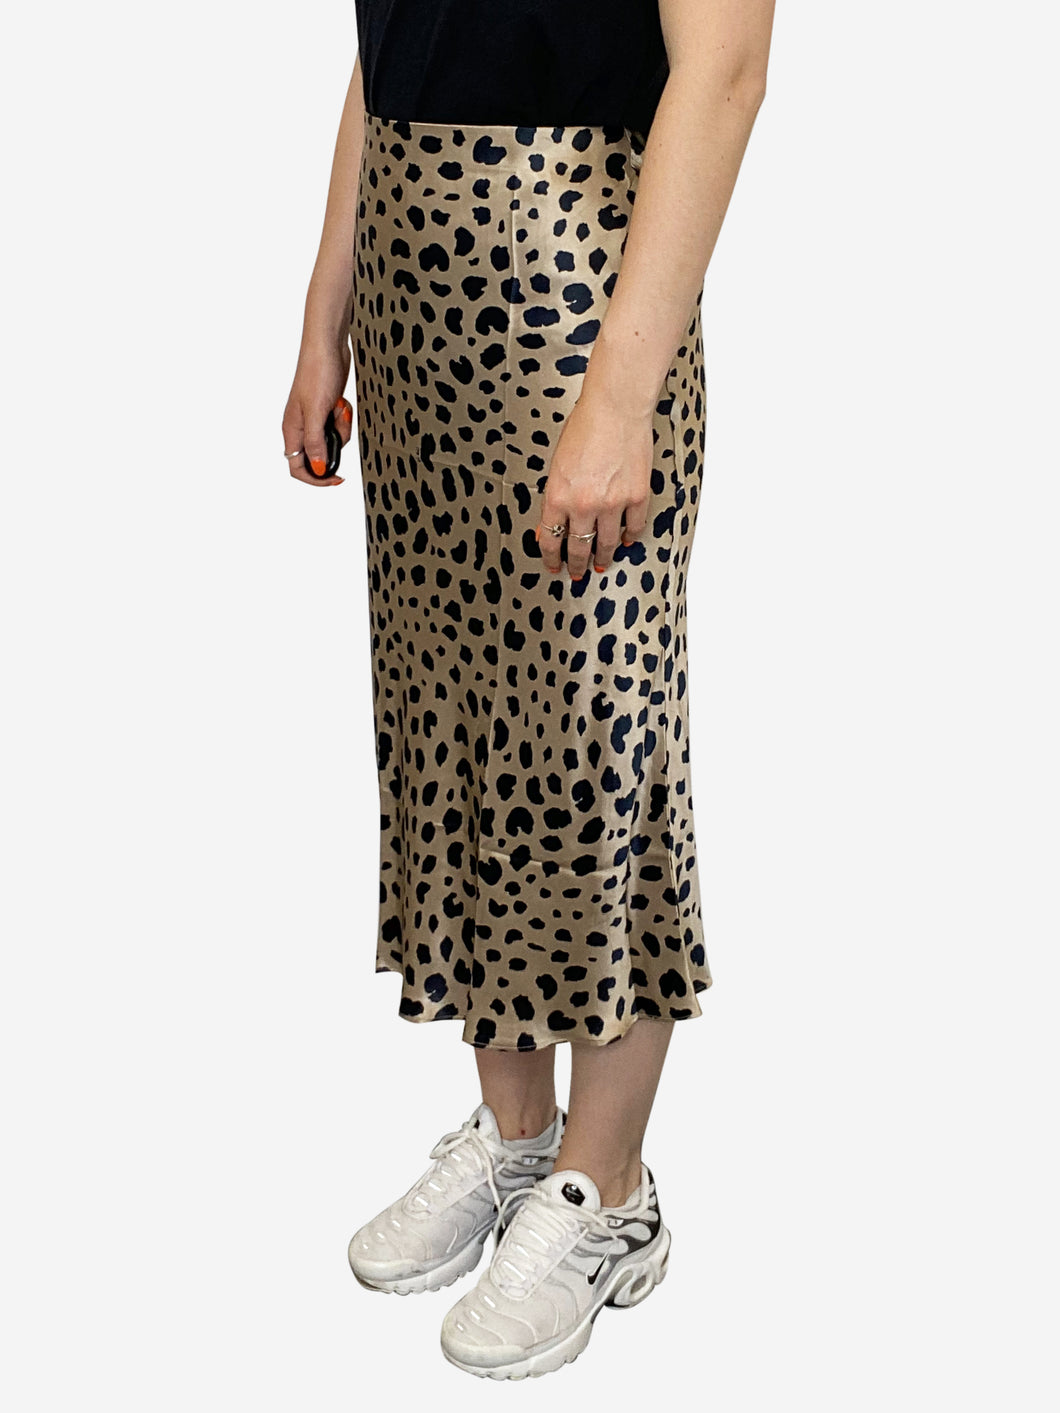 The Naomi animal print silky midi skirt - size S